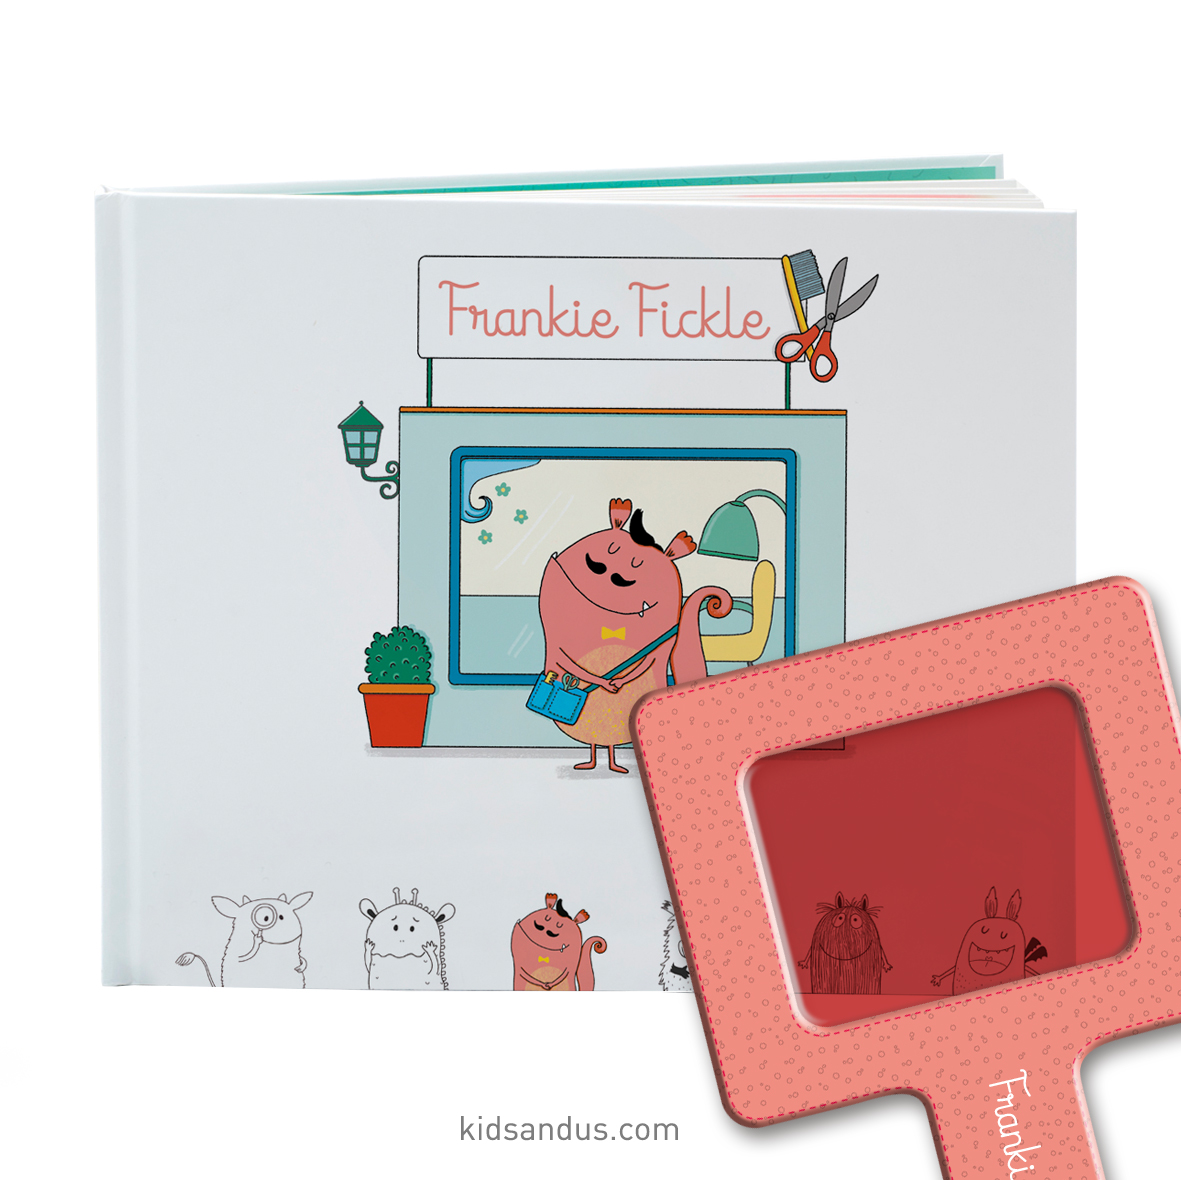 In the Summer Readers, discover the new adventure of Frankie Fickle